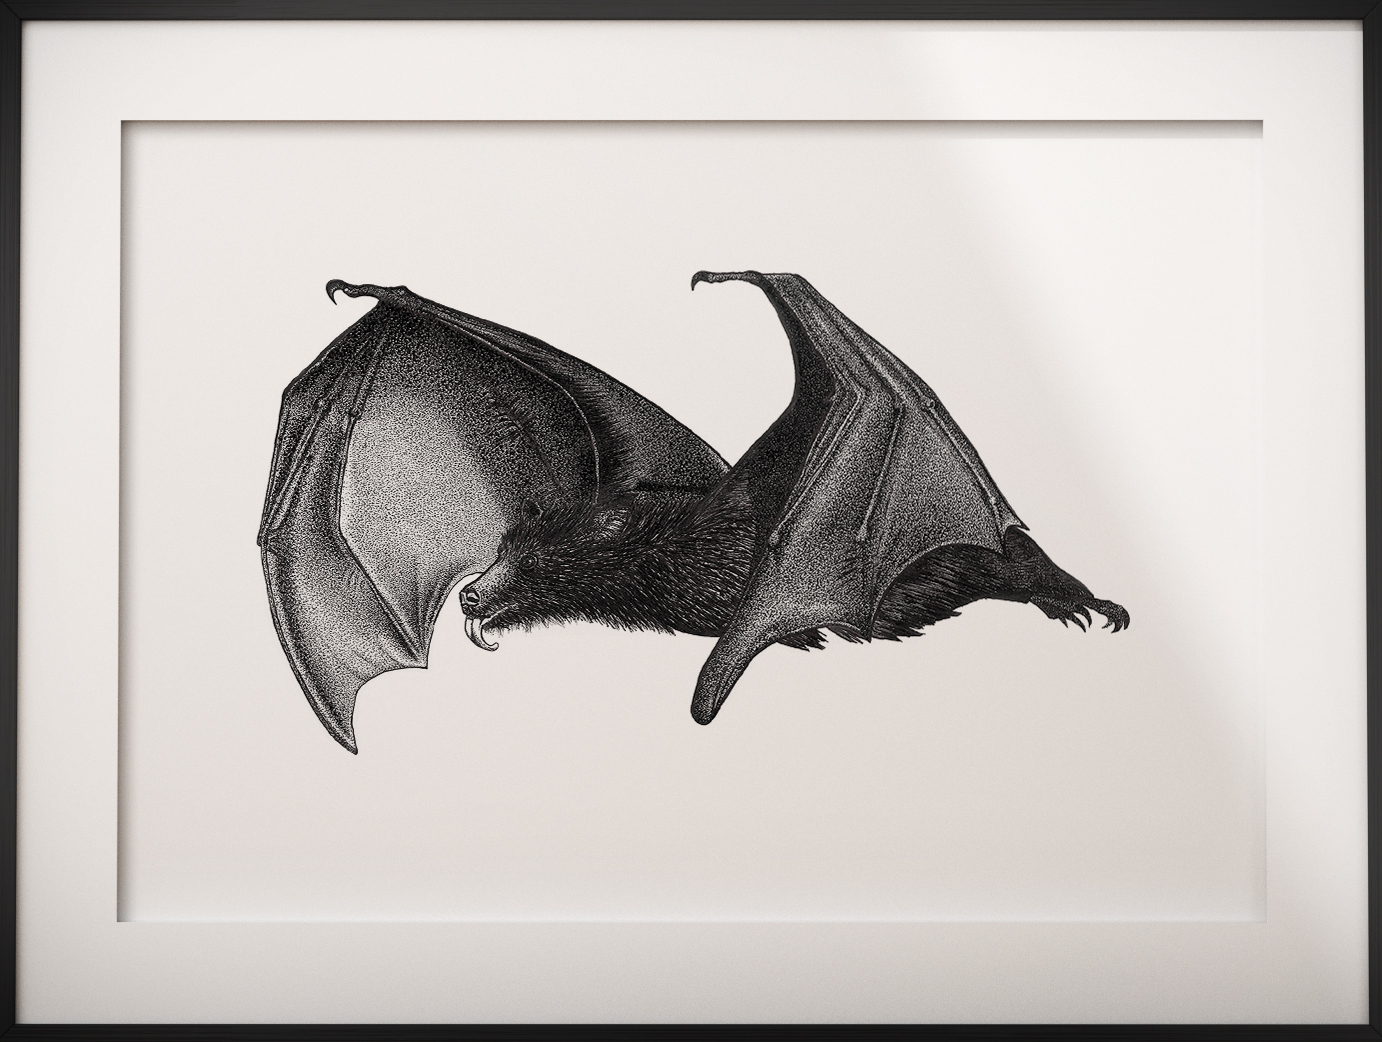 Flying Fox/Bat